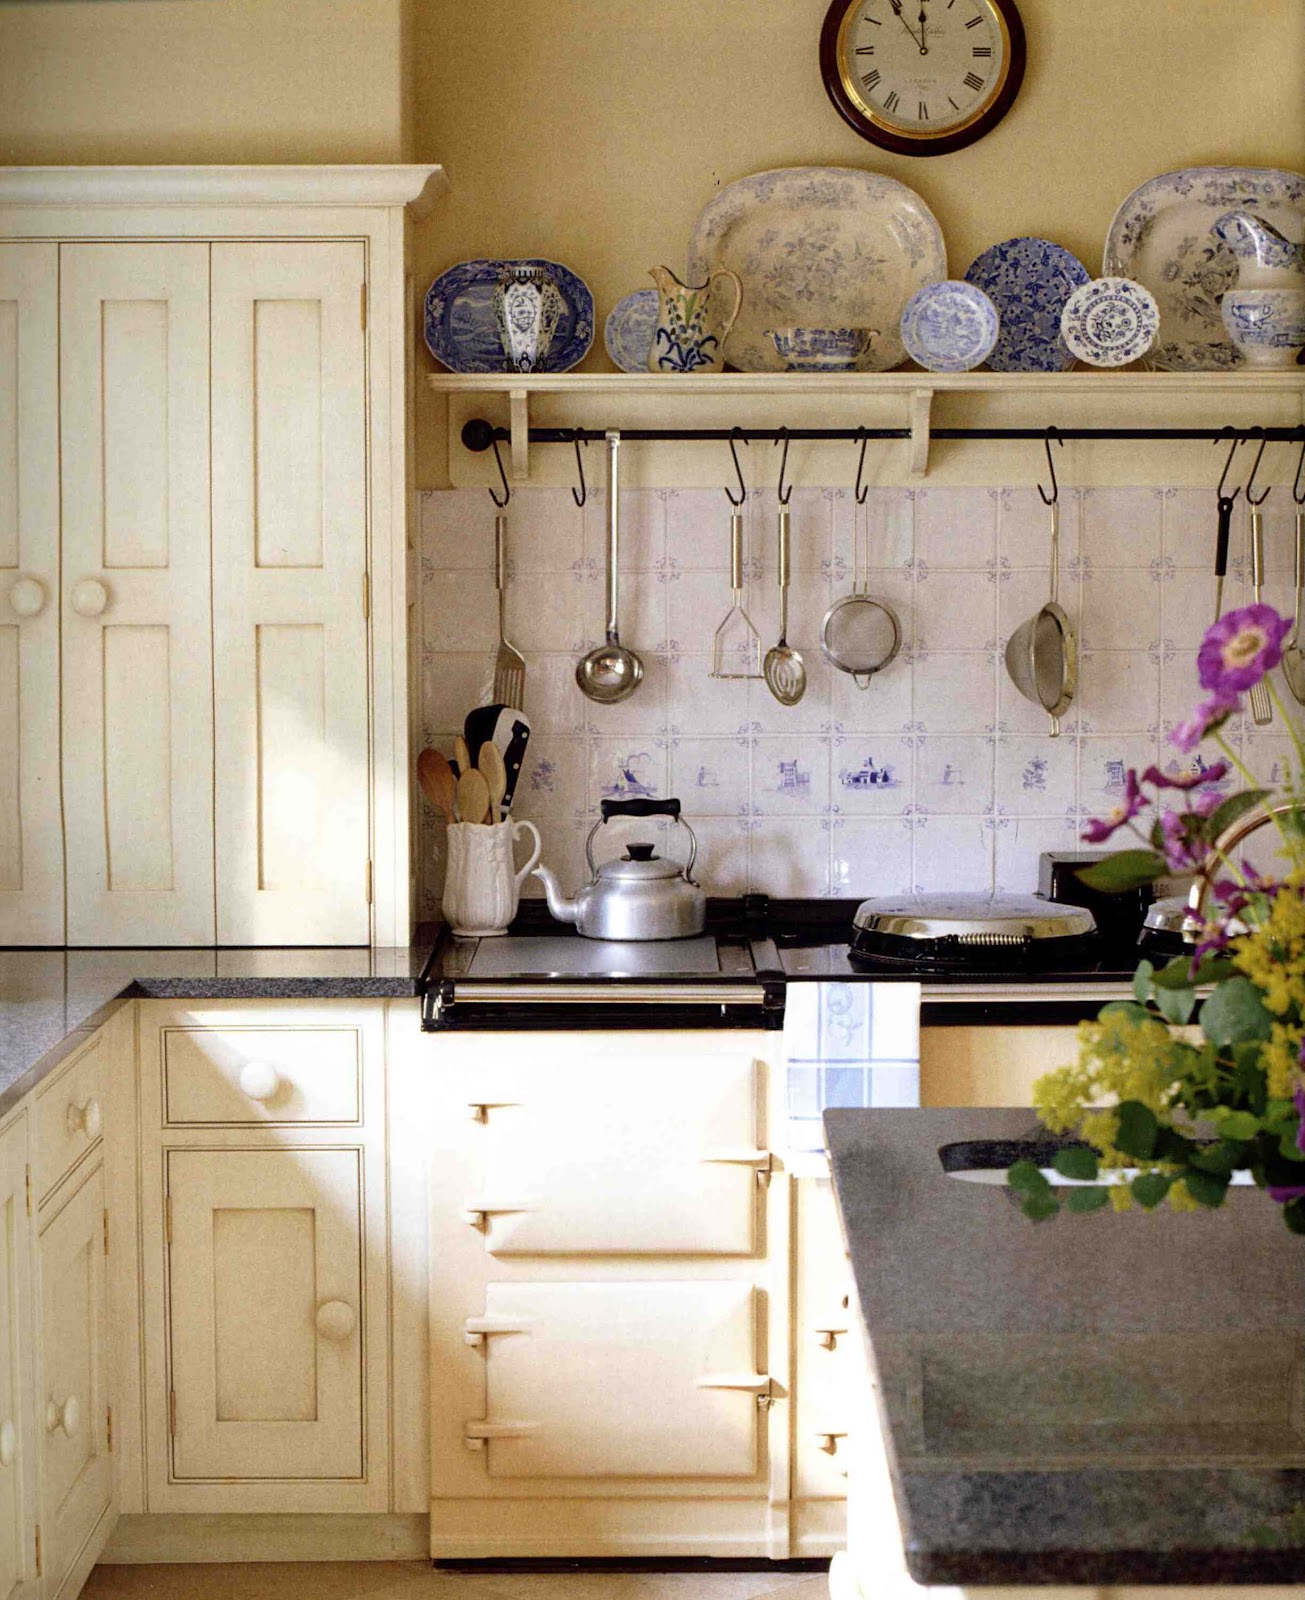 English Cottage Kitchen Designs: Donna's Art At Mourning Dove Cottage: English Country Charm